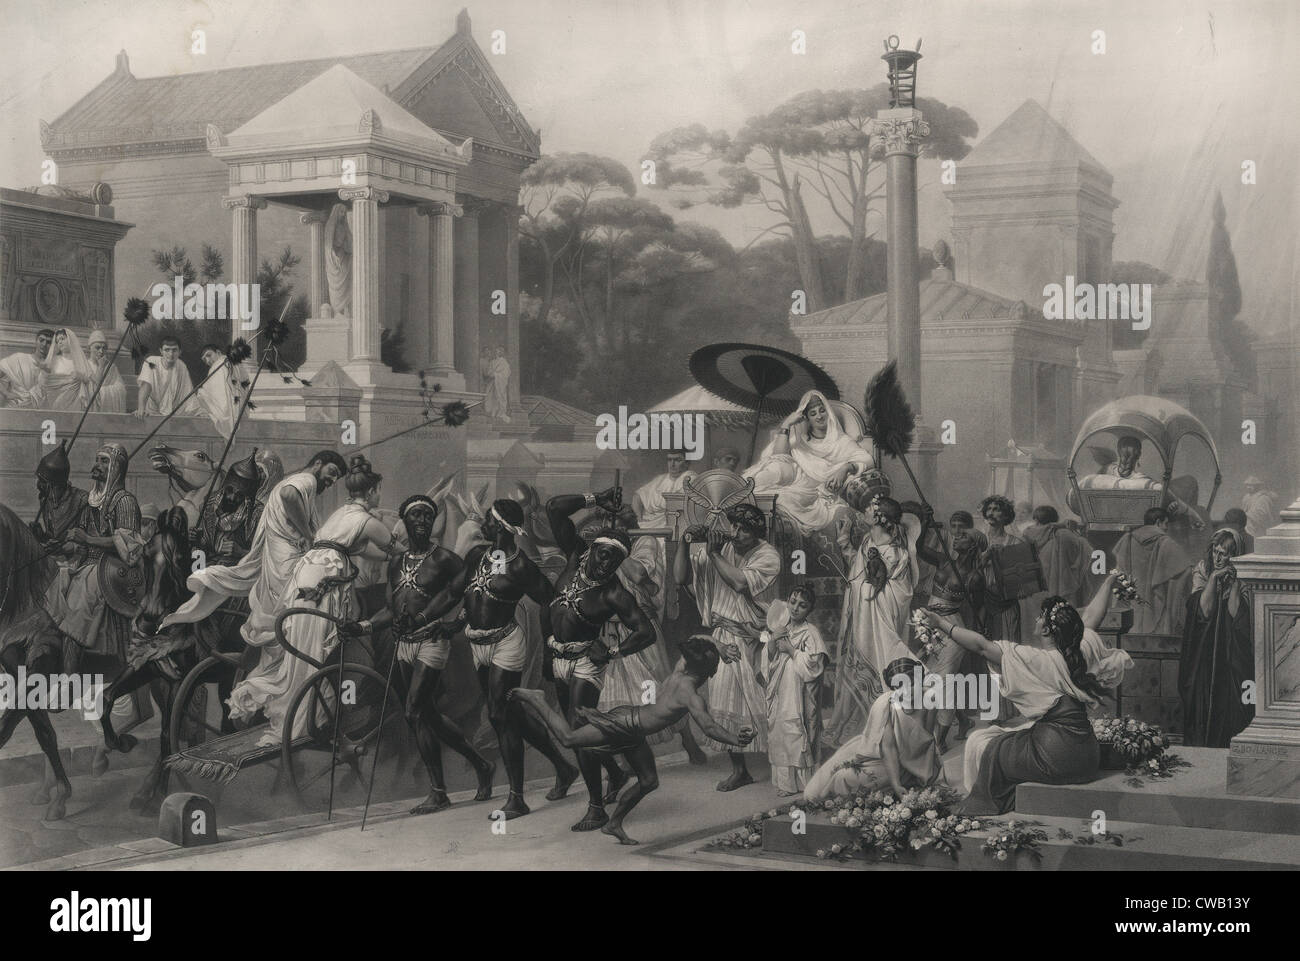 Ancient Rome, The Appian Way, Via Appia, Italy, engraving circa 1880. - Stock Image